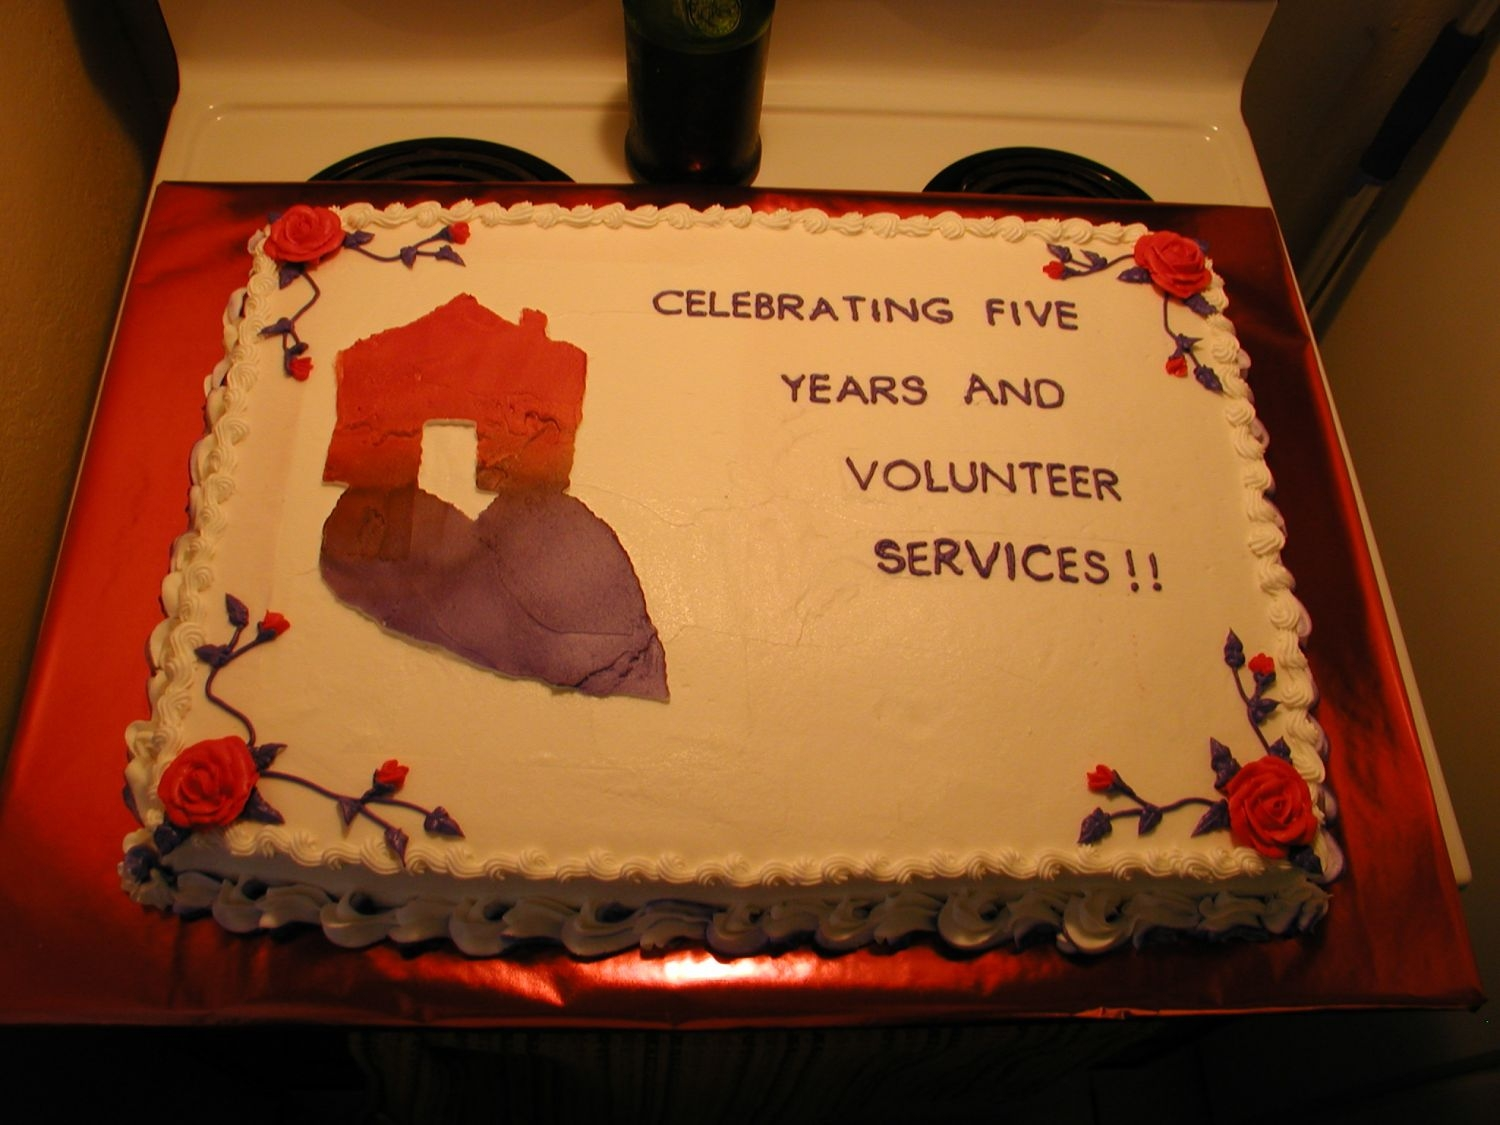 Women's Shelter Anniversay Made for the Family Place. The shelter celebrated 5 years, and wanted to thank volunteers. The logo was stencil sprayed with purple and red...